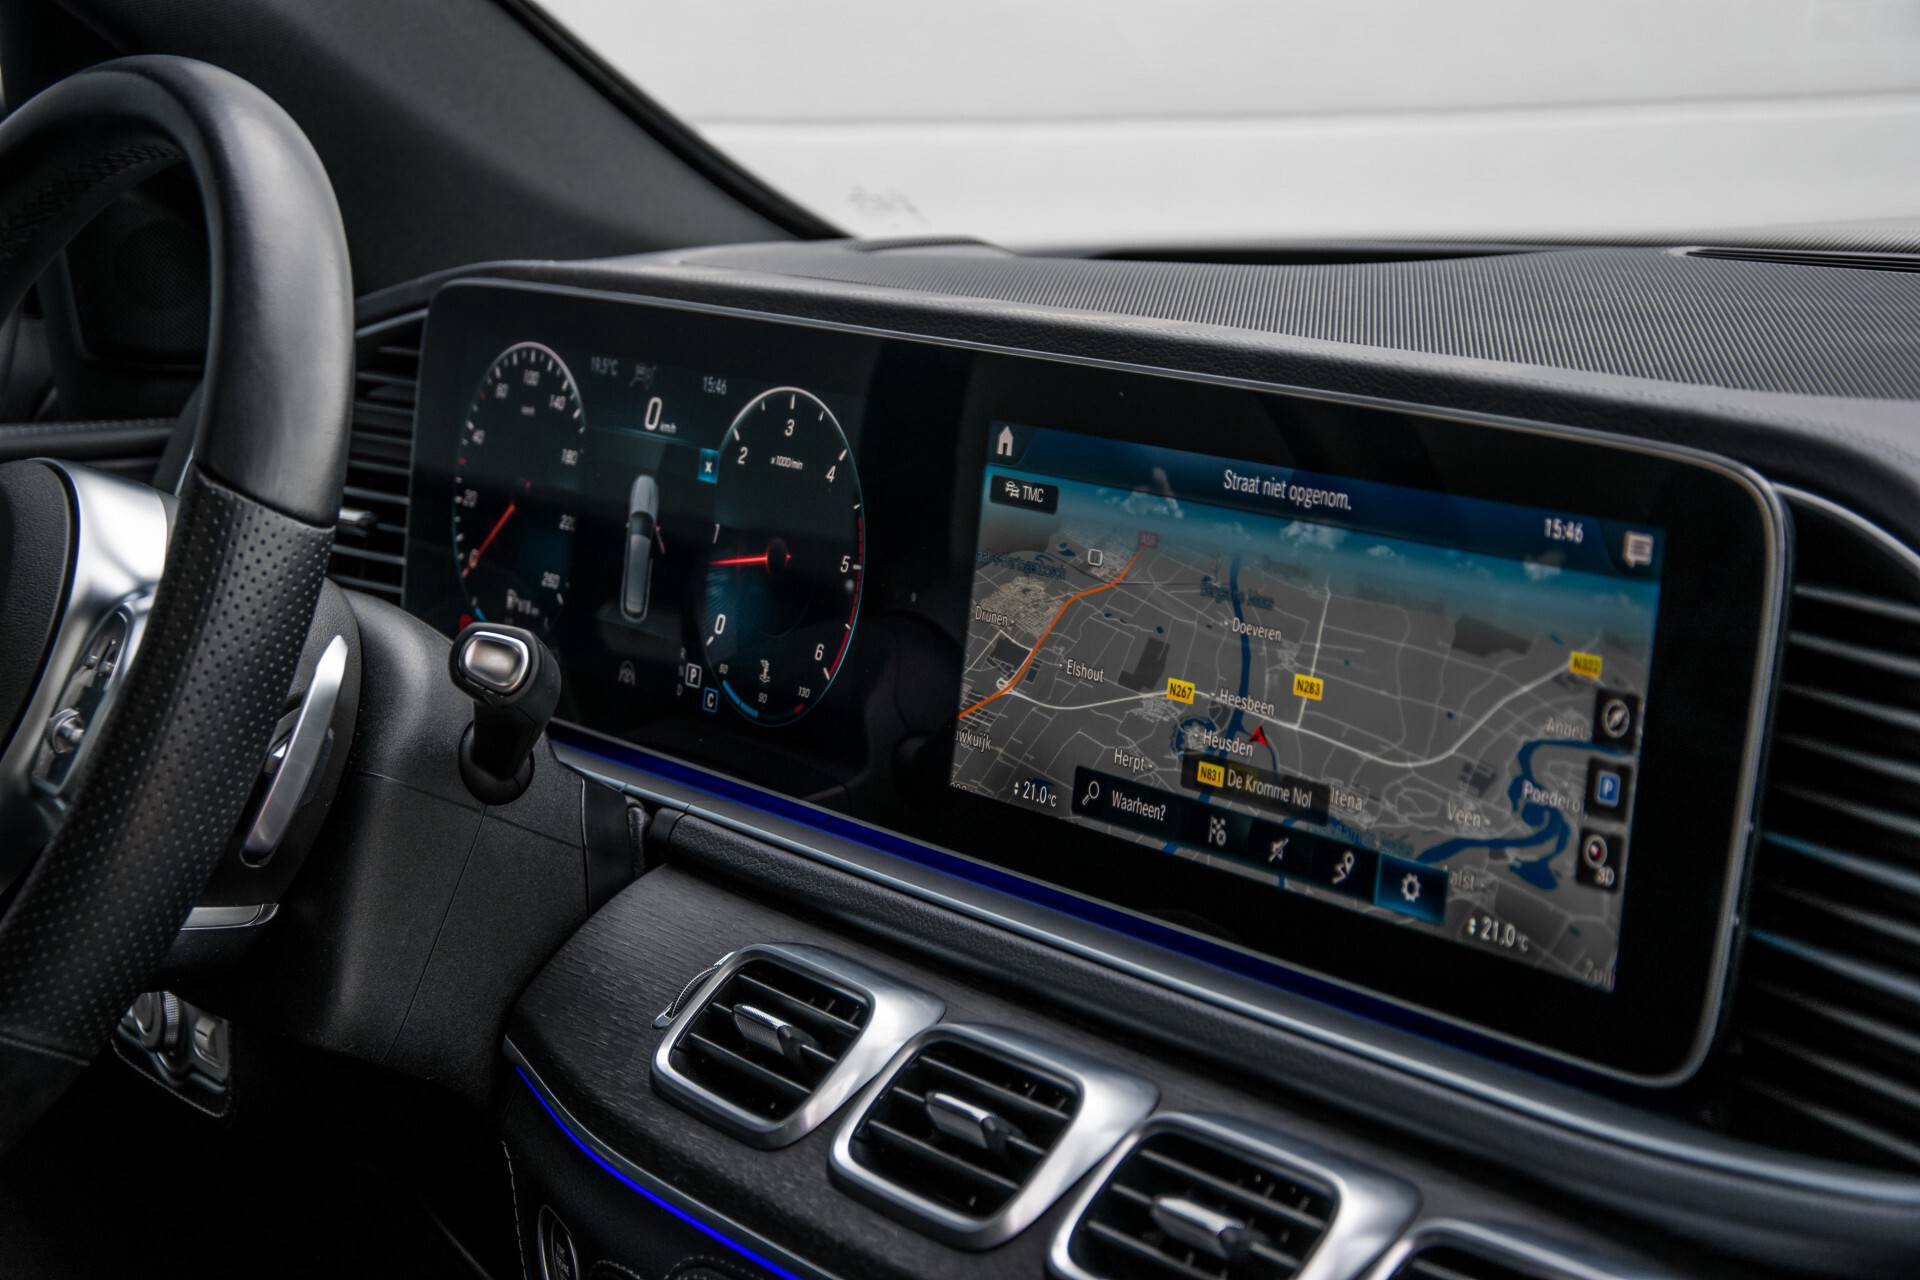 Mercedes-Benz GLE 400 d 4-M Luchtvering/Distronic/Keyless/HUD/Burmester/Nappa/360 camera/Panorama Aut9 Foto 59